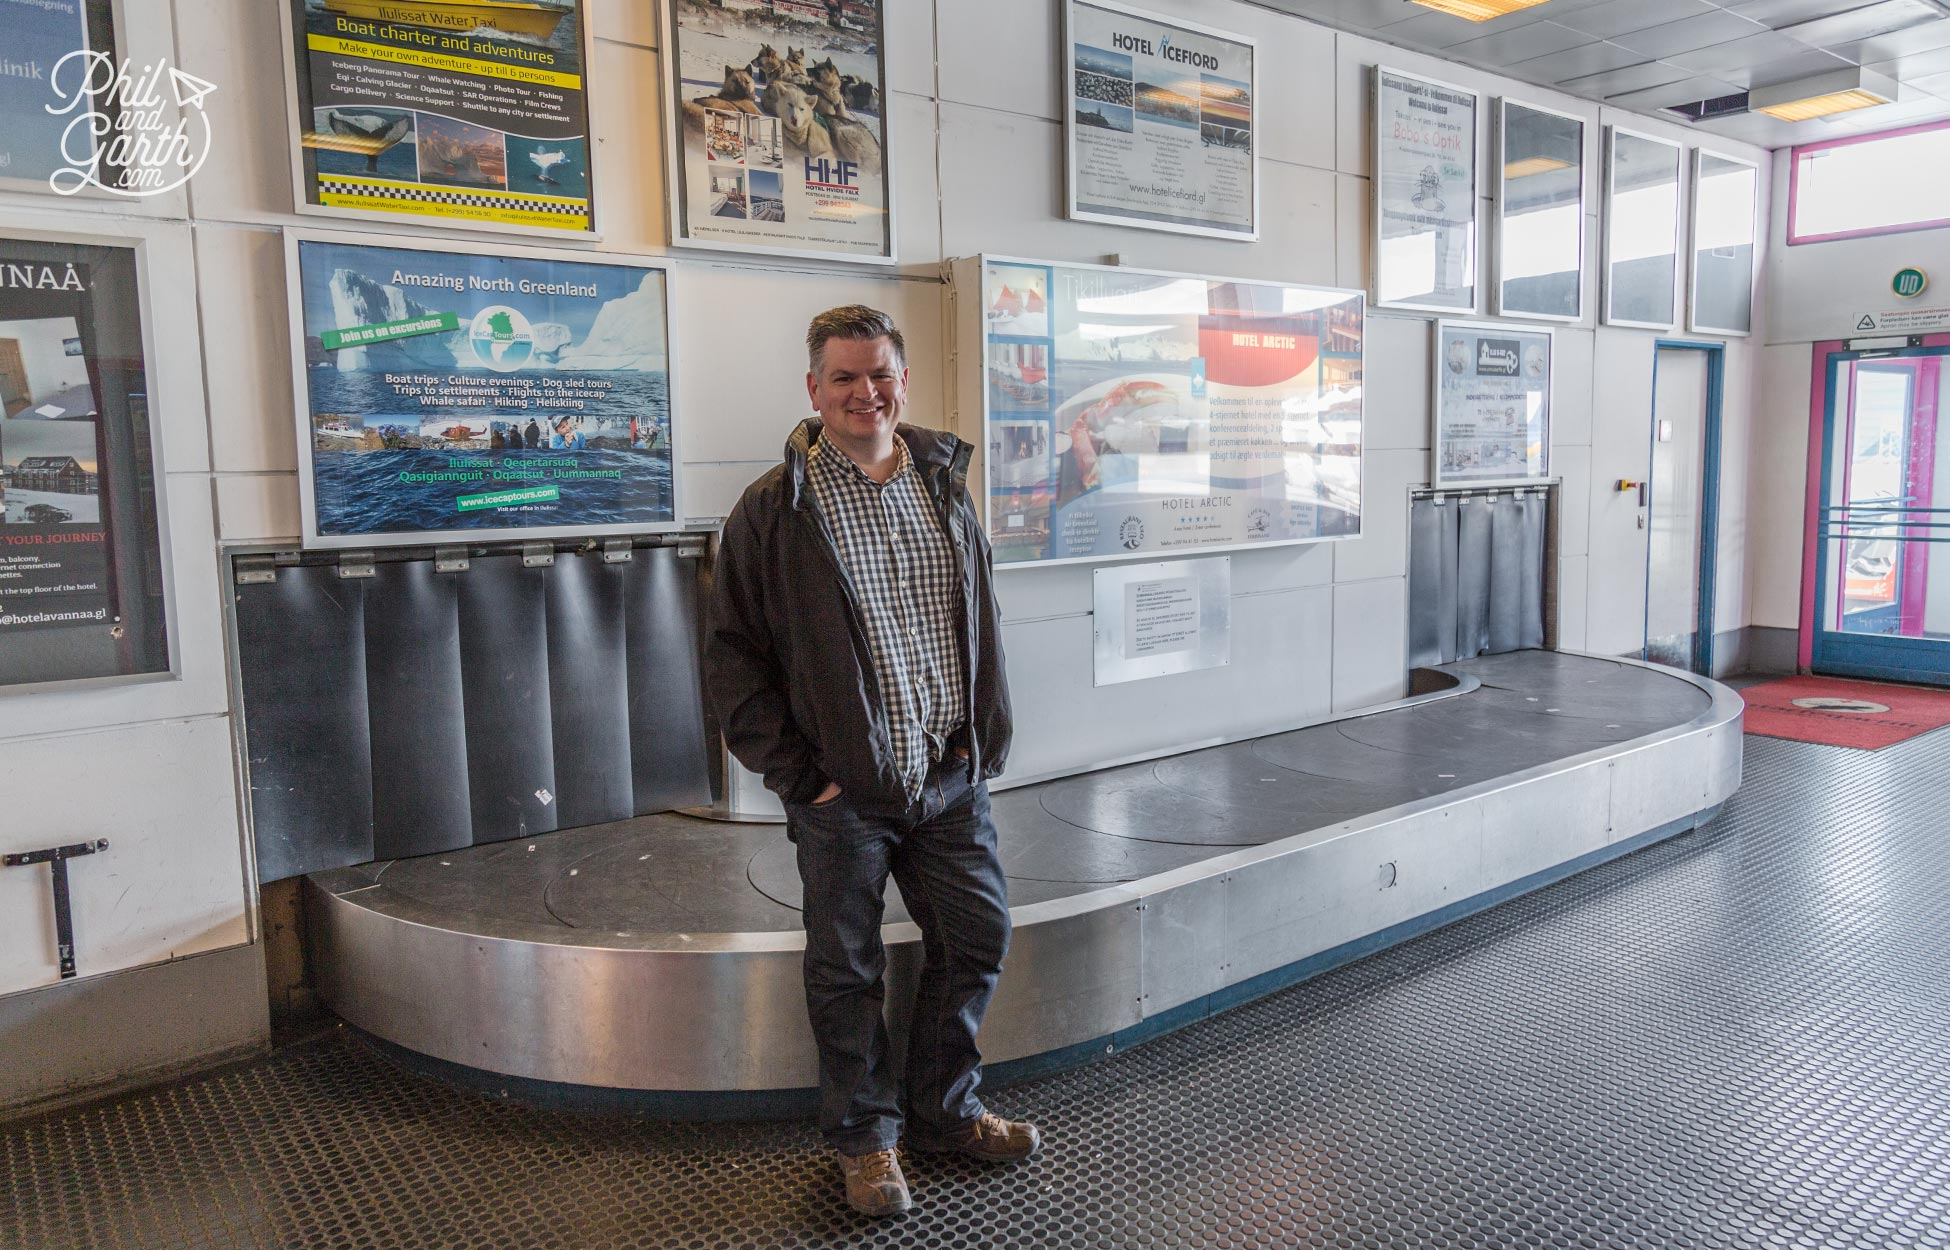 Phil at Ilulissat Airport with what must be the world's smallest baggage carousel